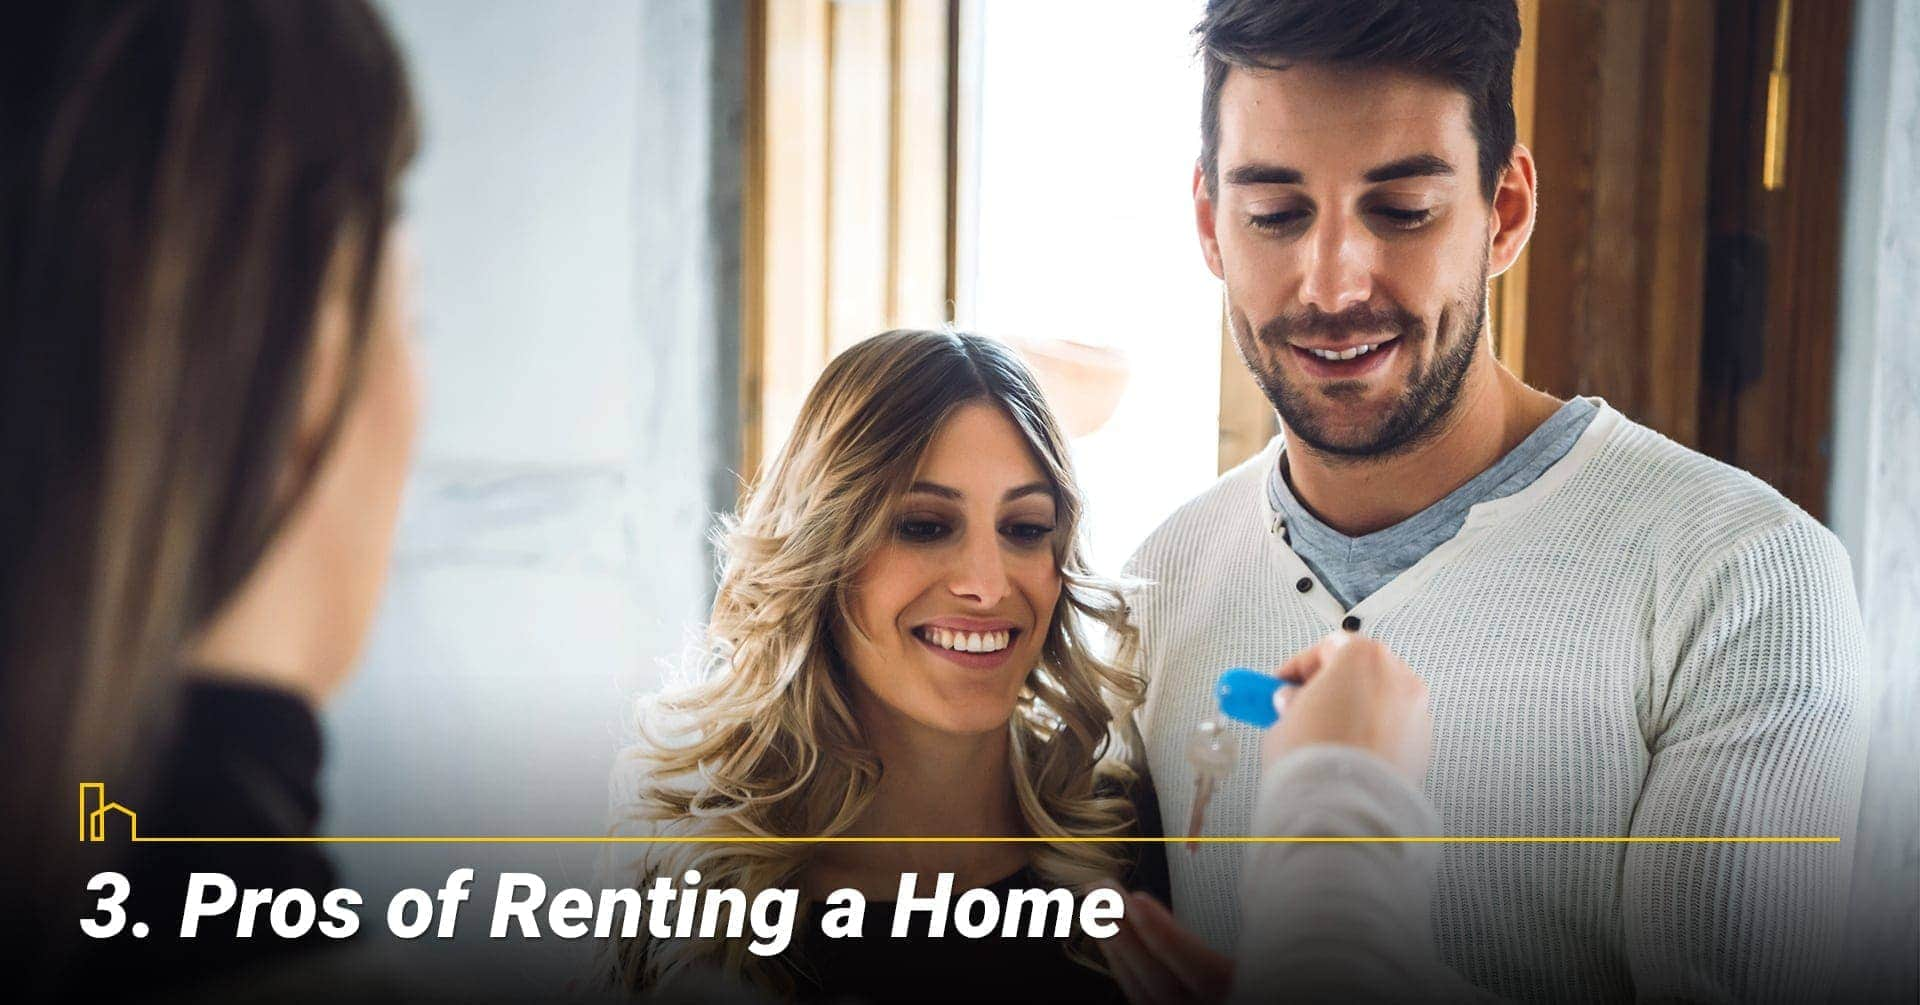 Pros of Renting a Home